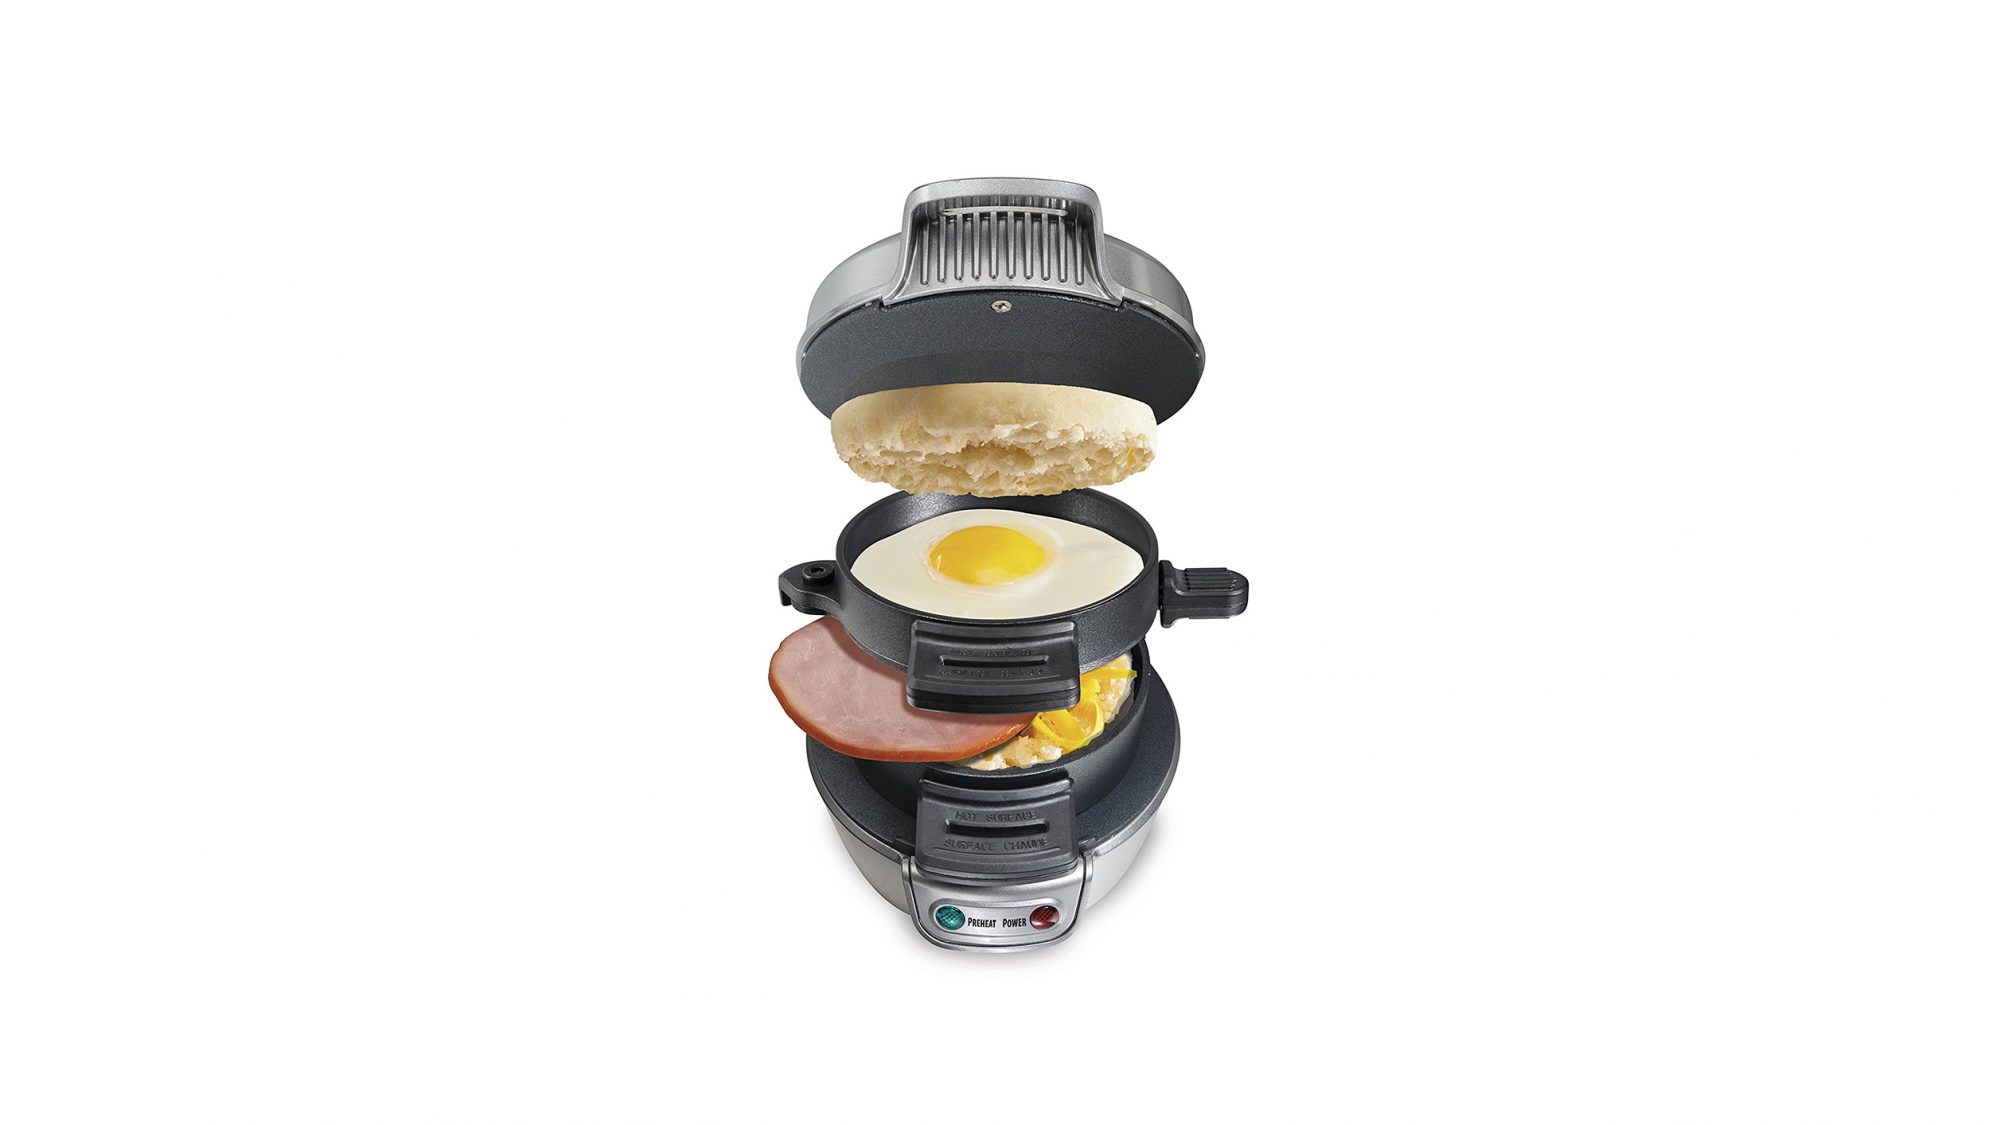 Amazon Appliances, layered breakfast sandwich maker